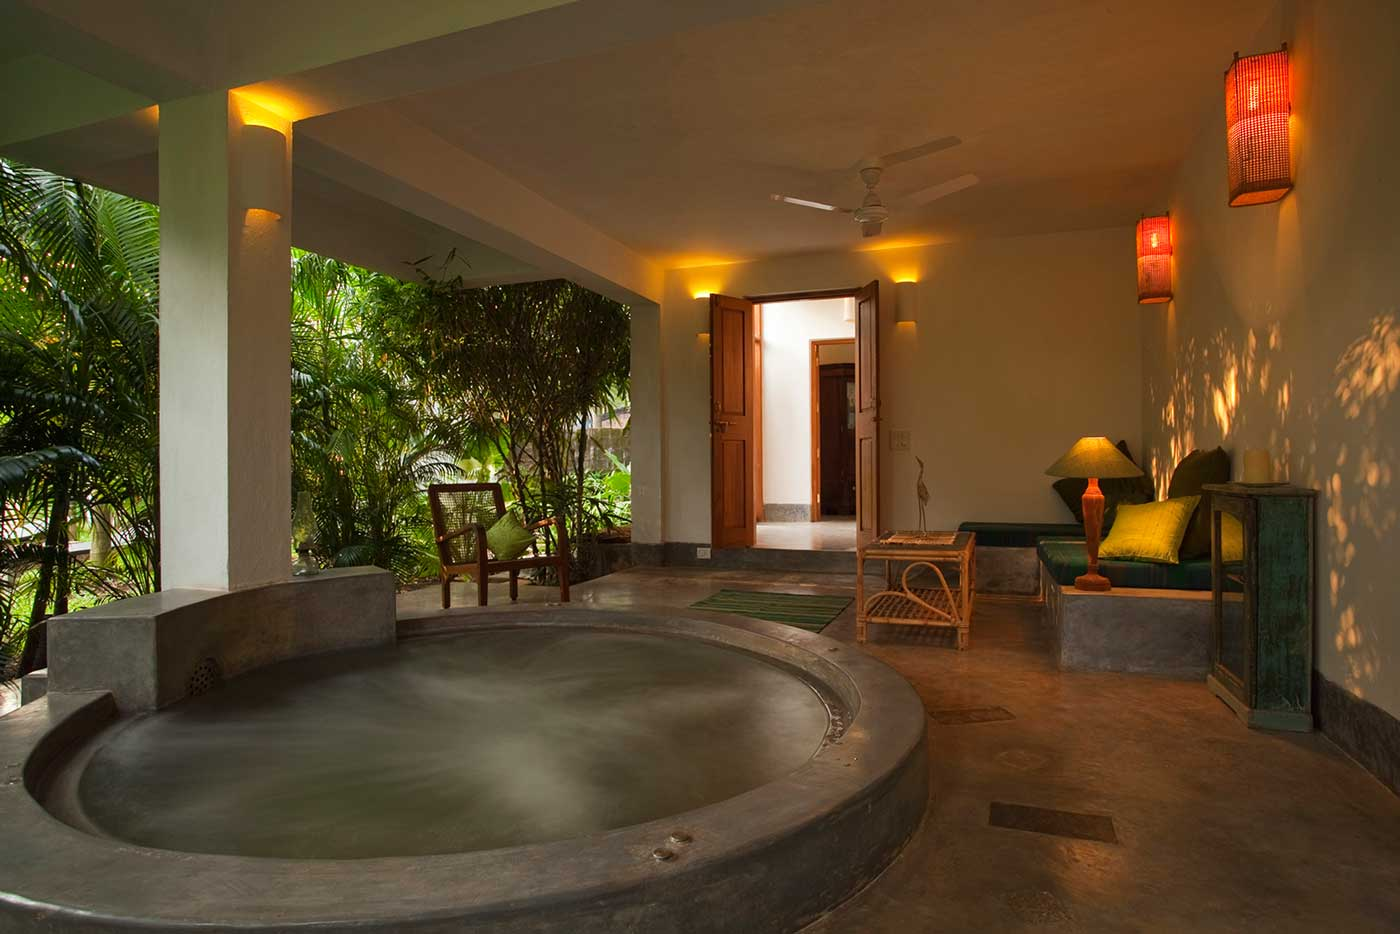 Coco Shambhala's Luxury Villa - Bharini, has a jet pool area that personifies a silent retreat for those looking to spend some quiet time.